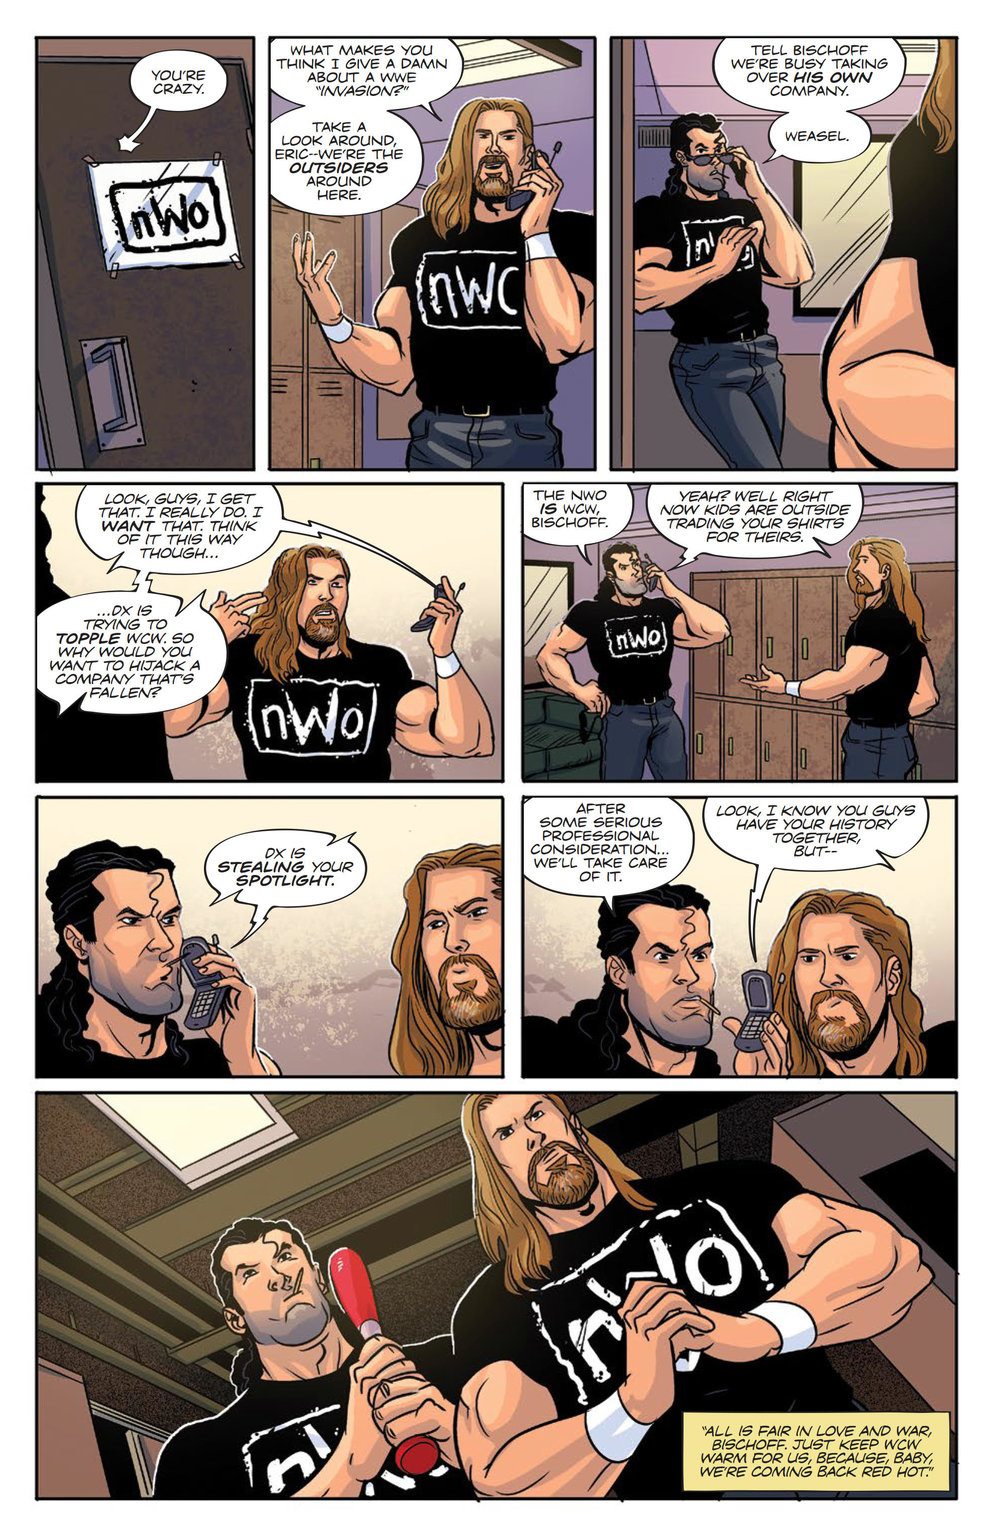 WWE_Attitude_2018_DXInvasion_PREVIEW3_PREVIEW.jpg